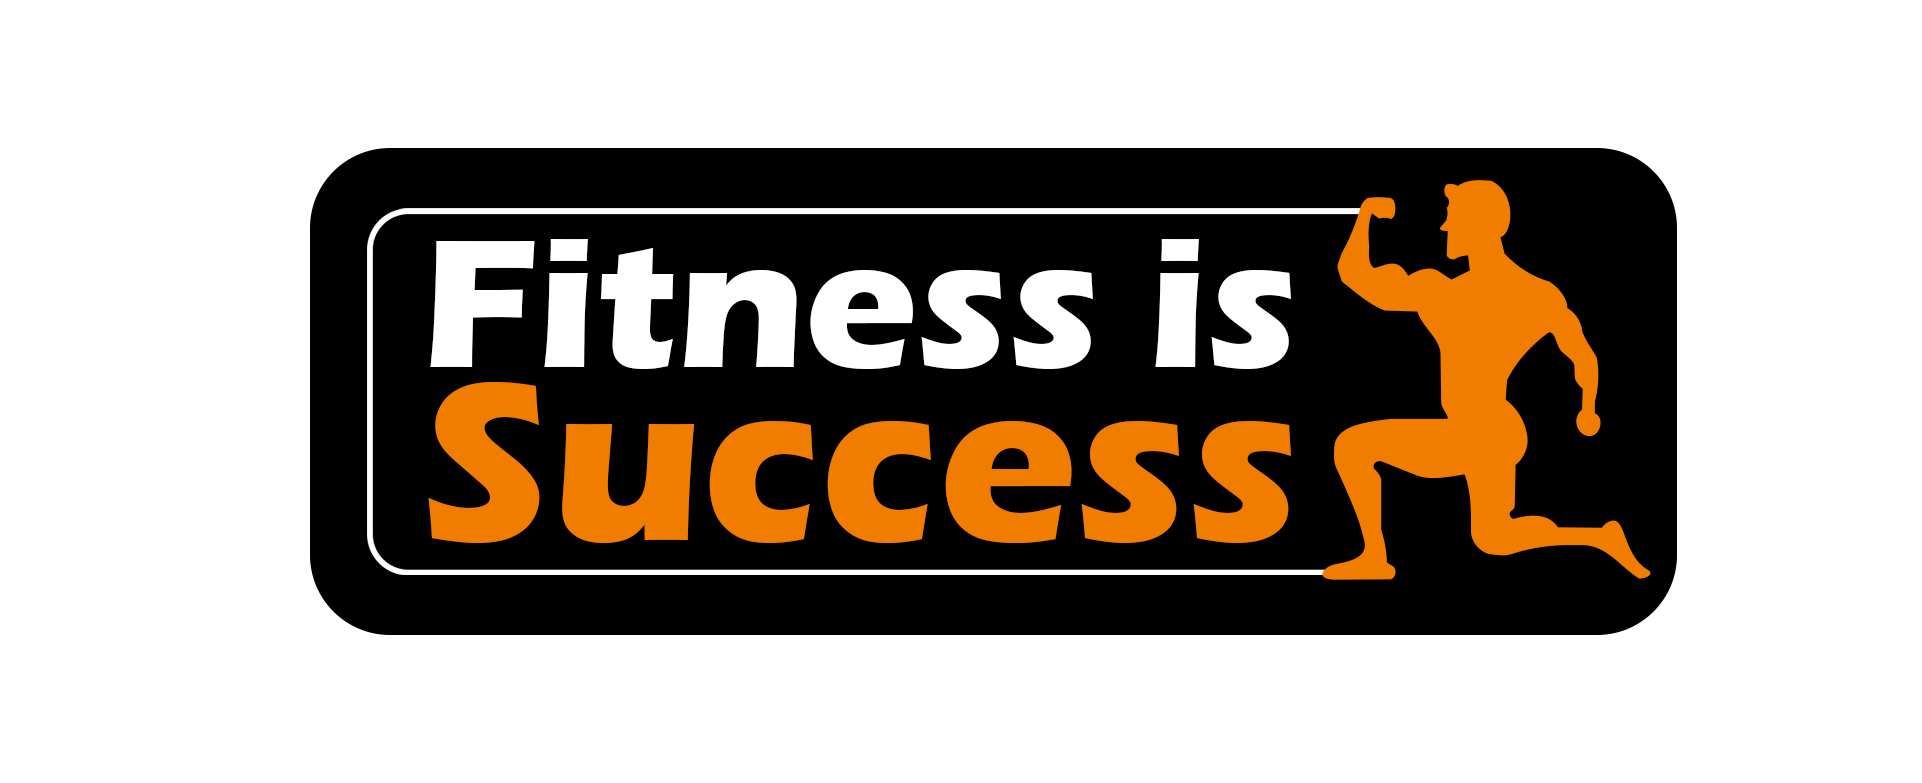 Service | Fitness is Success